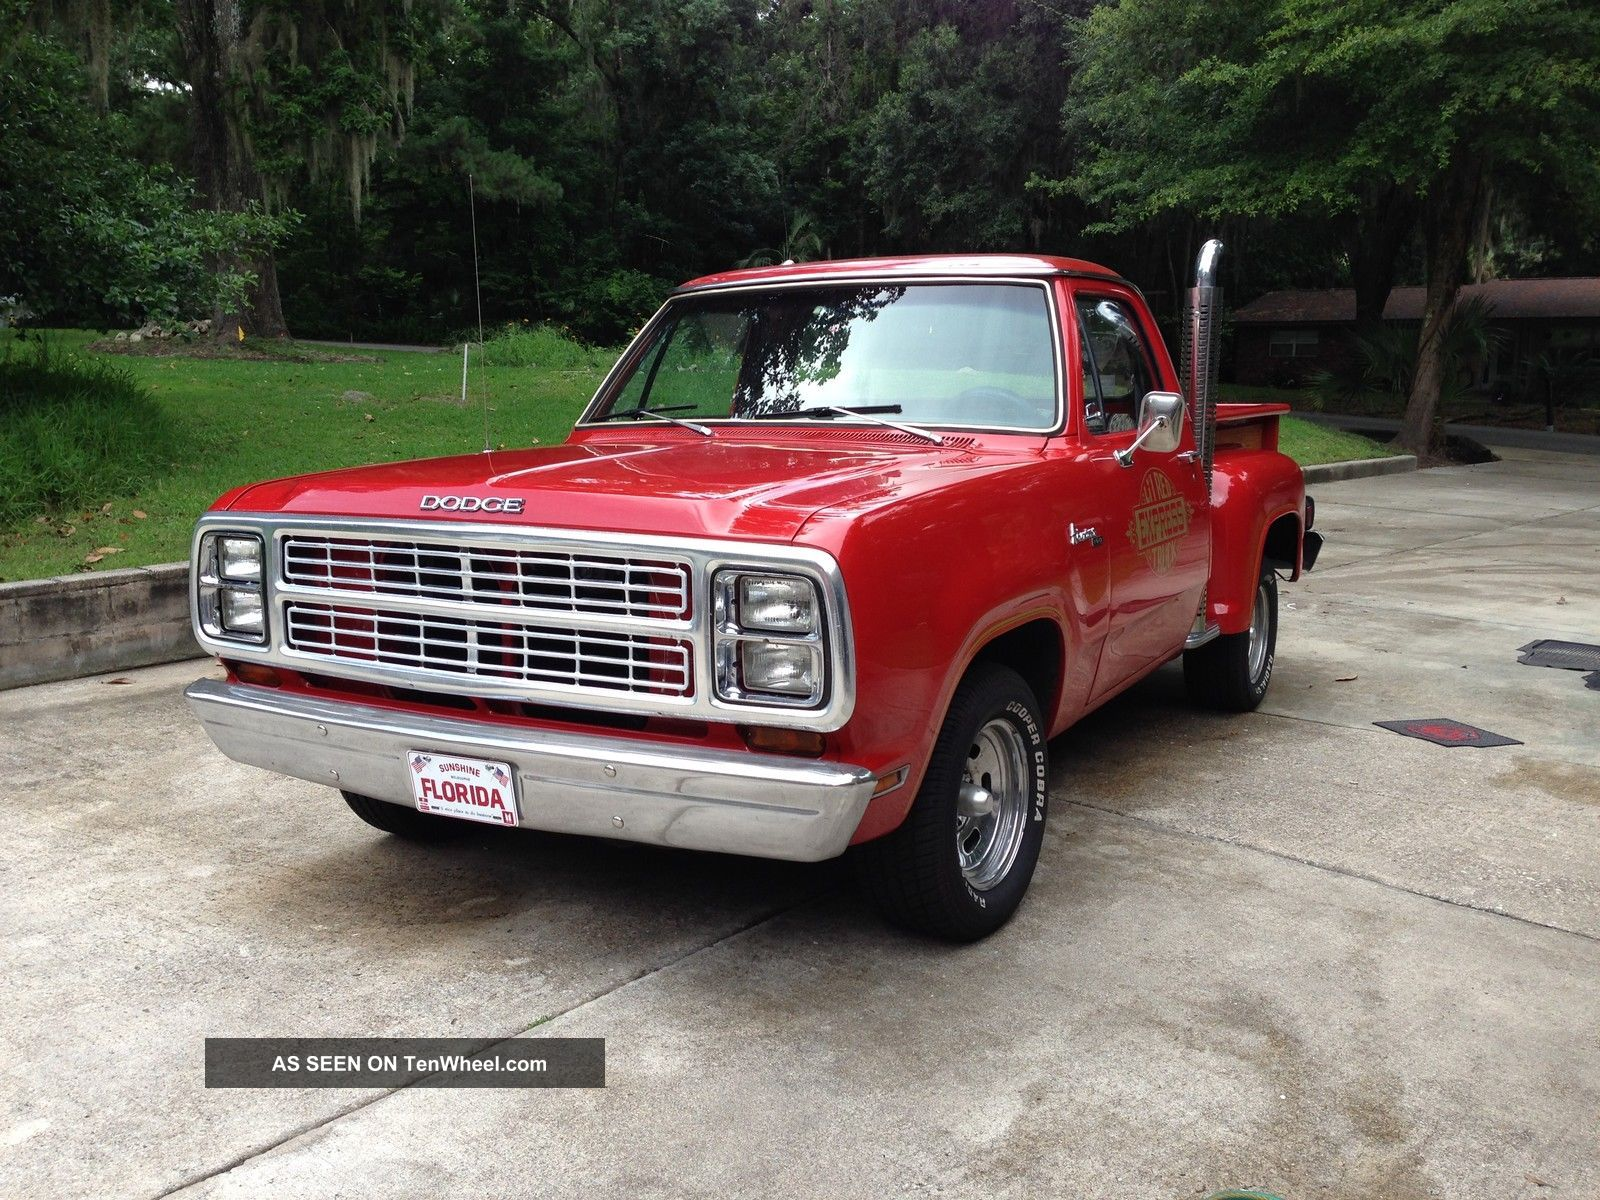 Dodge Van Repair as well 1994 Ford F 150 Pictures C5245 pi12731416 moreover 37819 1979 dodge lil red express d   150 factory correct arizona truck also 1011 1979 ford f150 4x4 longbed ranger lariat xlt factory ac 1978 1977 1976 1975 together with 16887 1979 chevrolet c  10 truck in california. on 1979 toyota pickup 4x4 specs